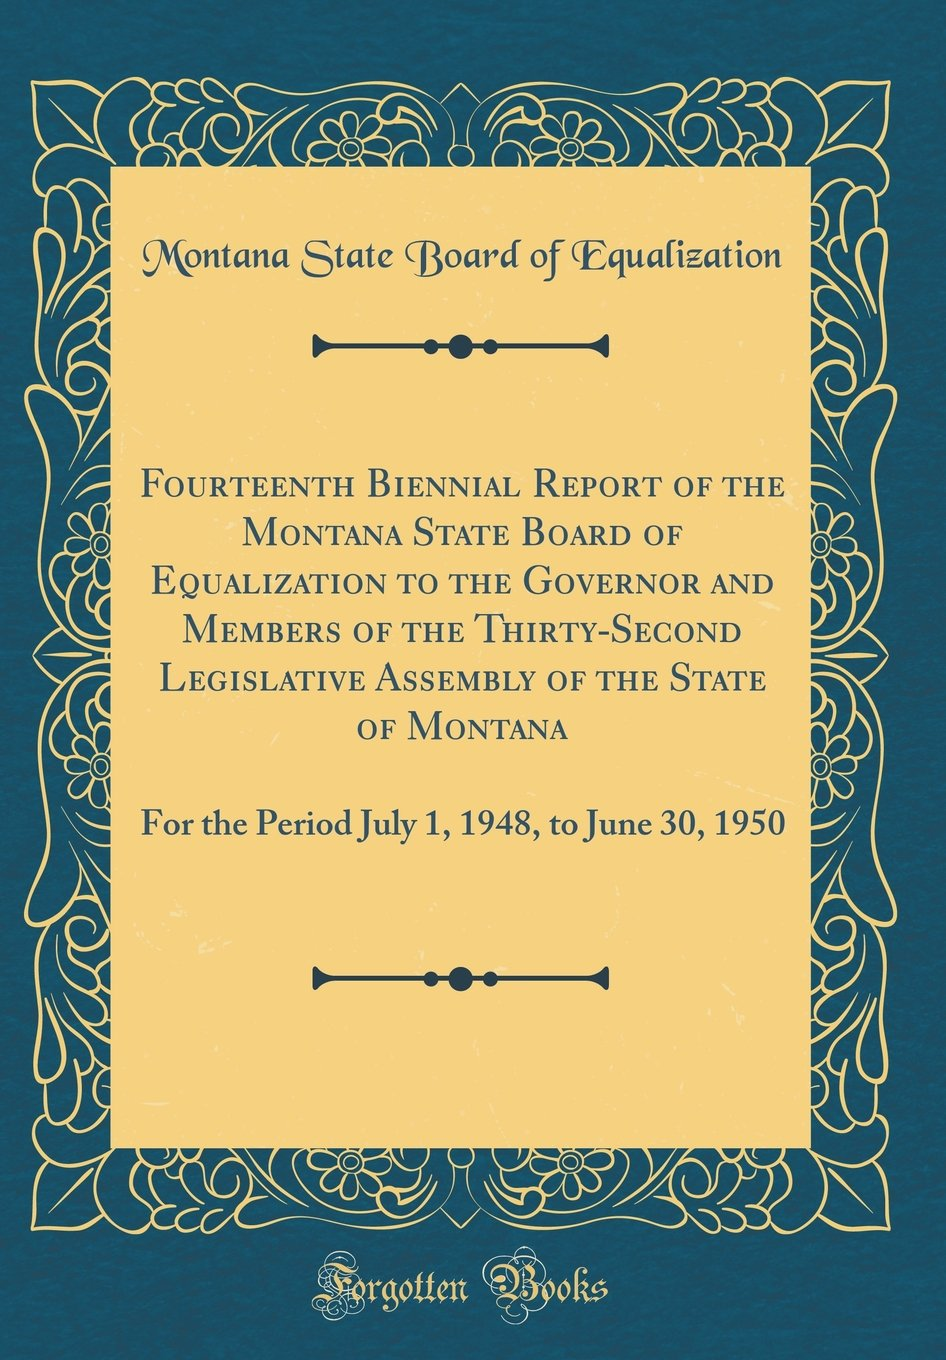 Fourteenth Biennial Report of the Montana State Board of Equalization to the Governor and Members of the Thirty-Second Legislative Assembly of the ... 1, 1948, to June 30, 1950 (Classic Reprint) Text fb2 book